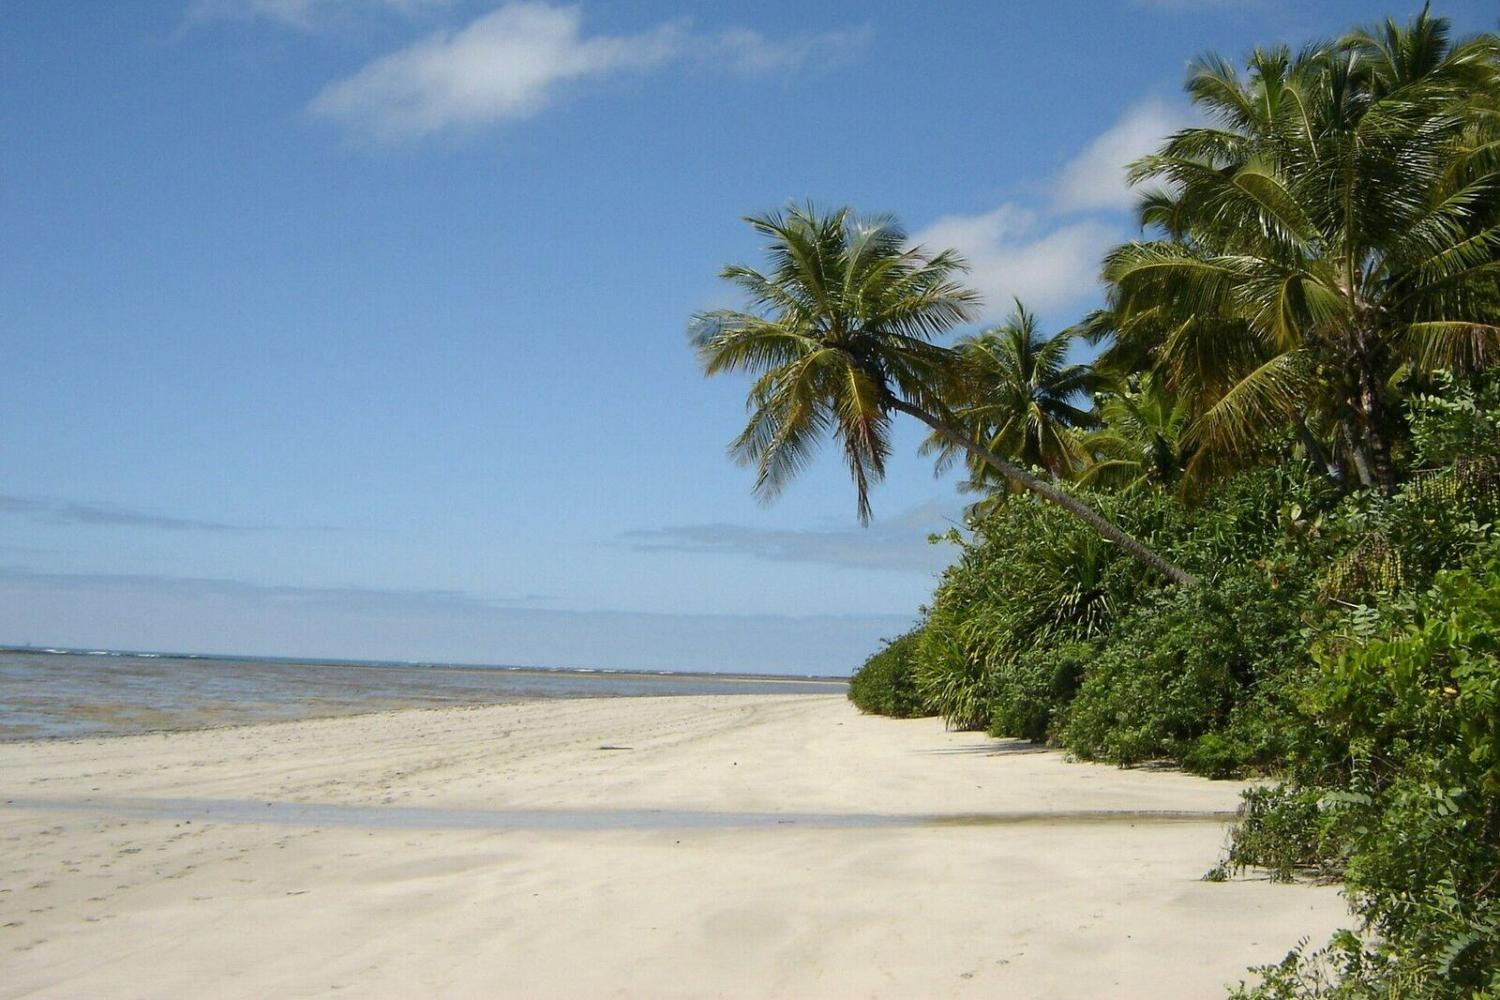 Enjoy rest and relaxation on the beaches of Brazil